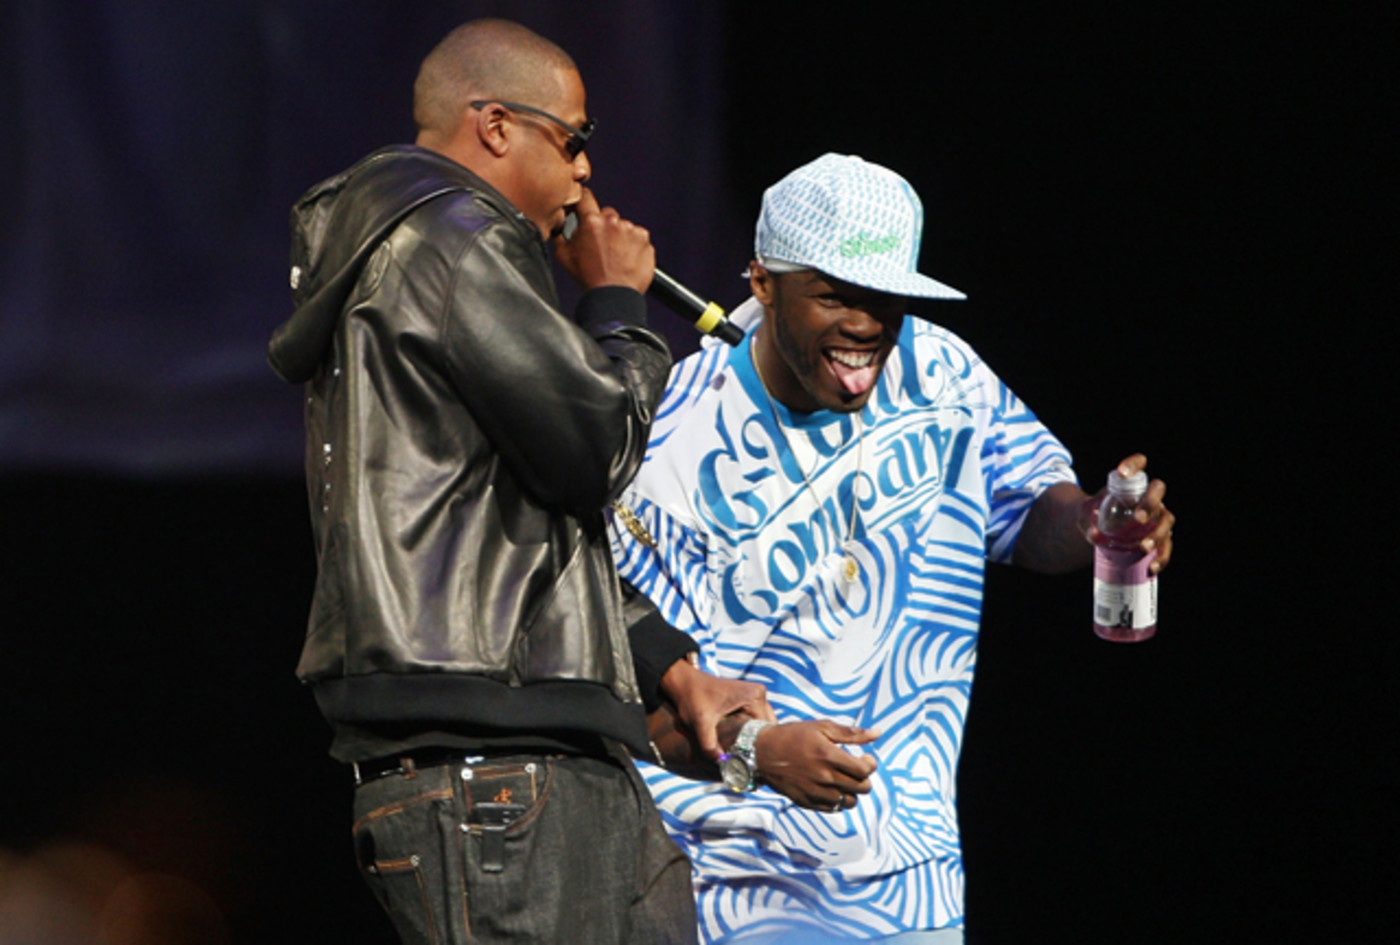 Jay Z and 50 Cent at SCREAMFEST '07